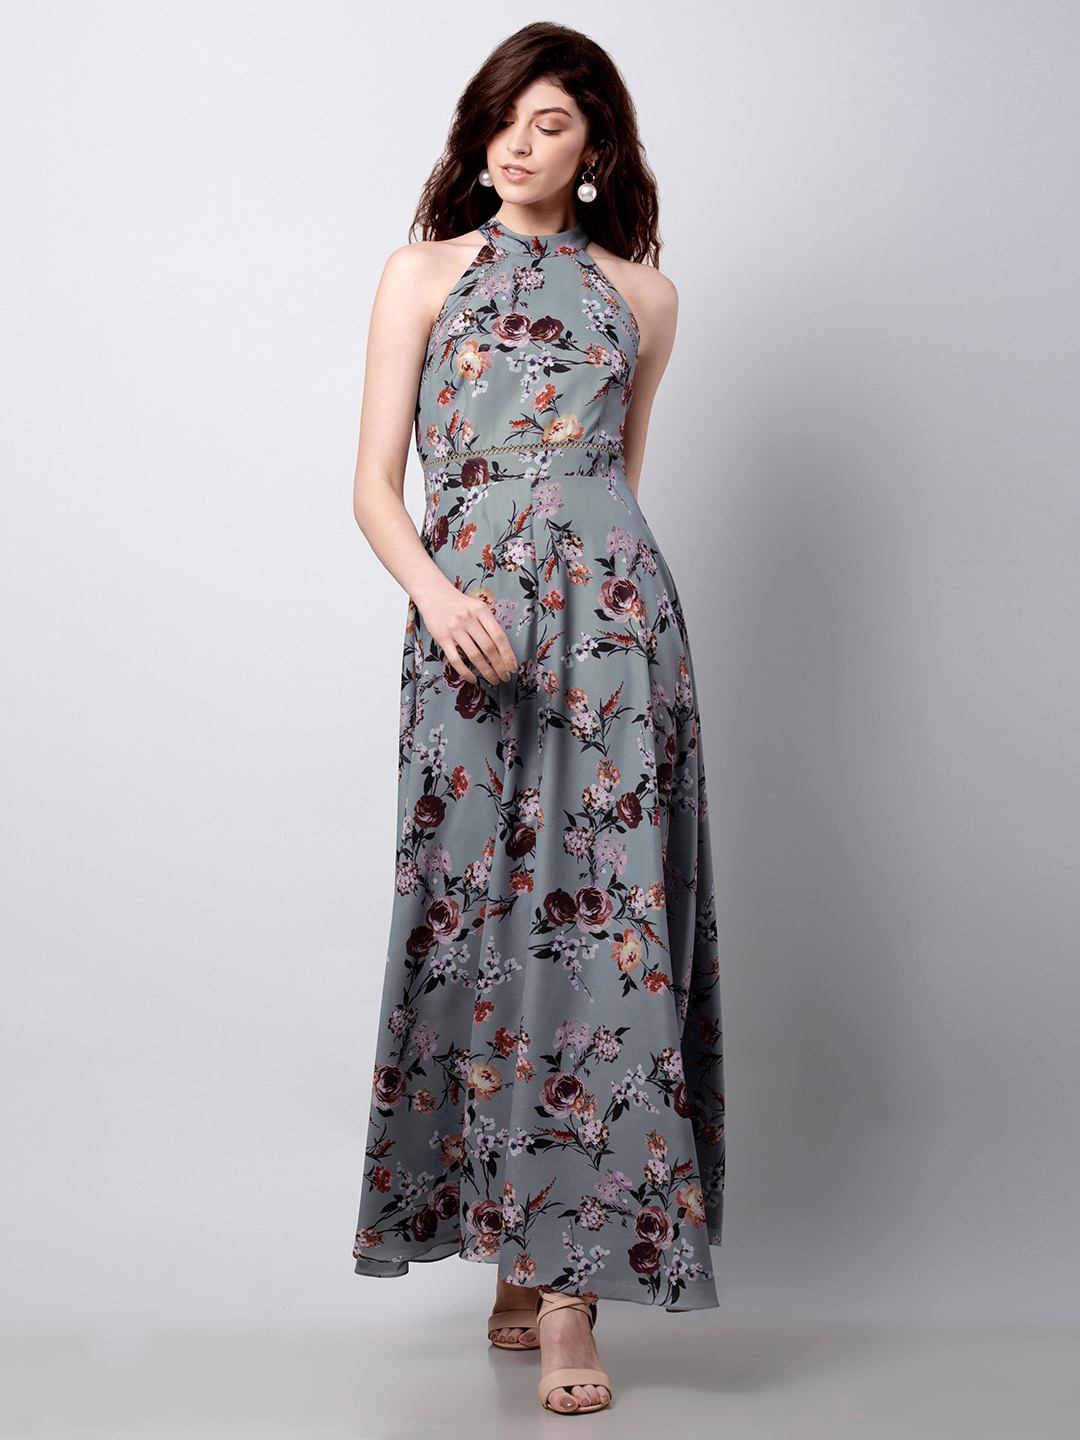 f5a122f48 Faballey - Exclusive Faballey Online Store in India at Myntra